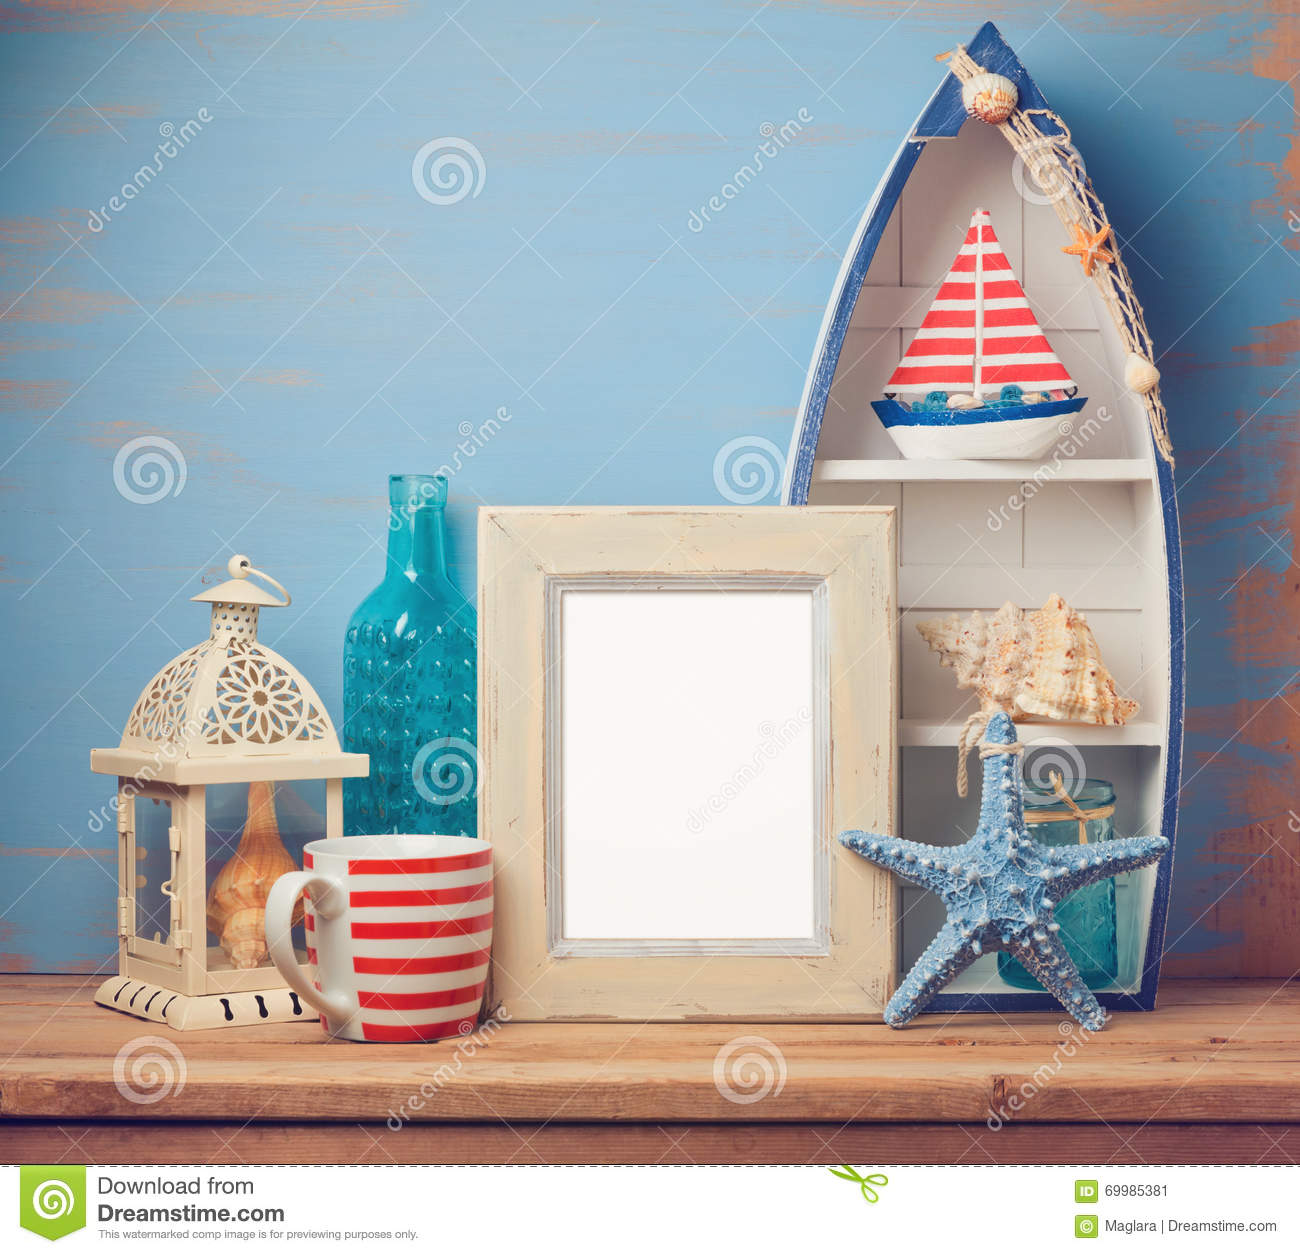 Summer Home Decor poster frame mock up template with summer home decor stock photo